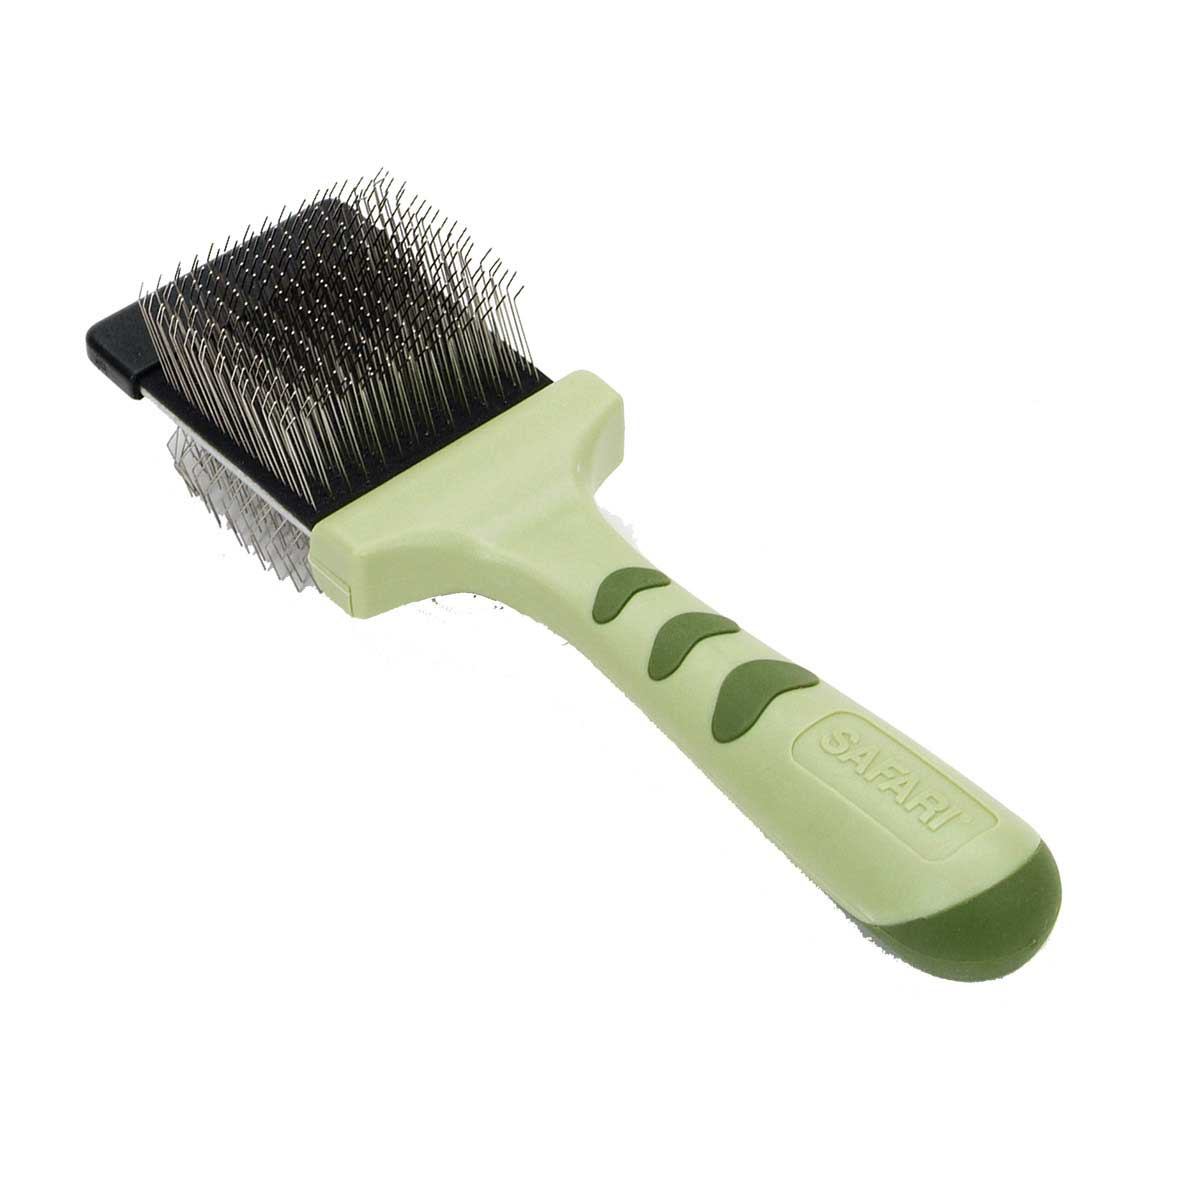 Safari Flexible Slicker For Medium Dogs - Double Sided Grooming Hairbrush